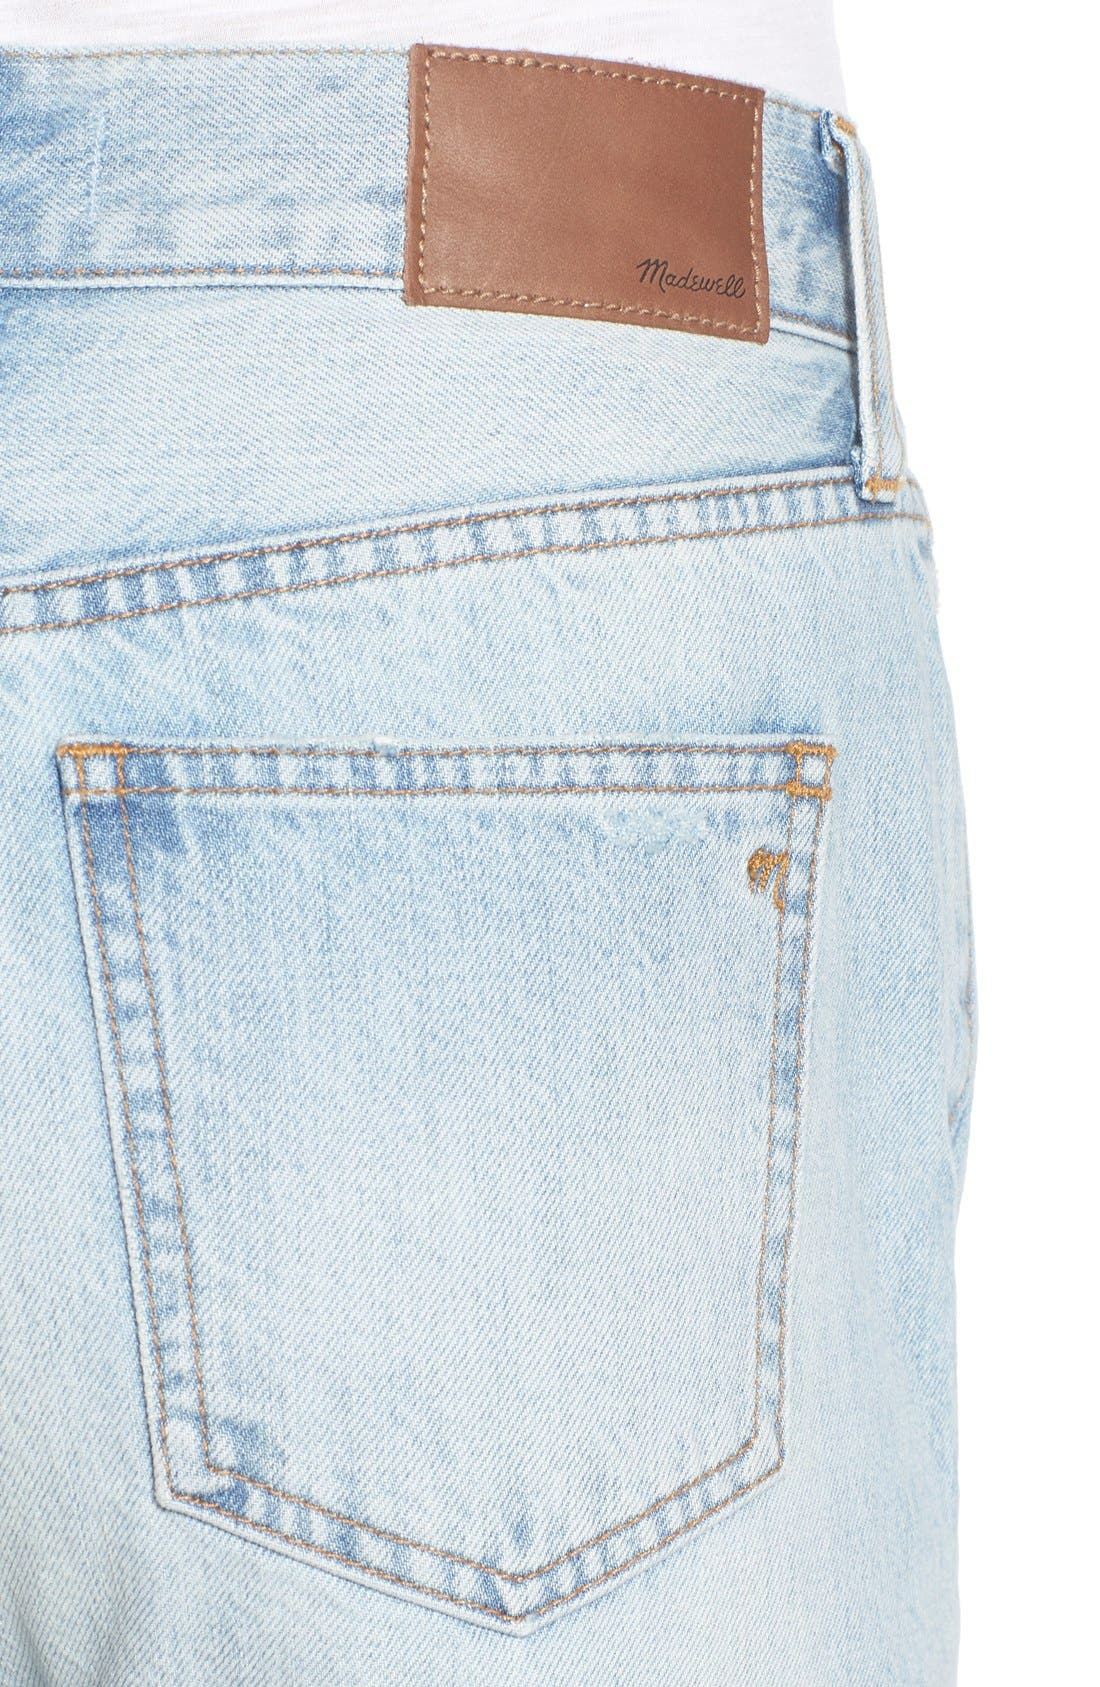 'Perfect Summer' High Rise Ankle Jeans,                             Alternate thumbnail 8, color,                             FITZGERALD WASH